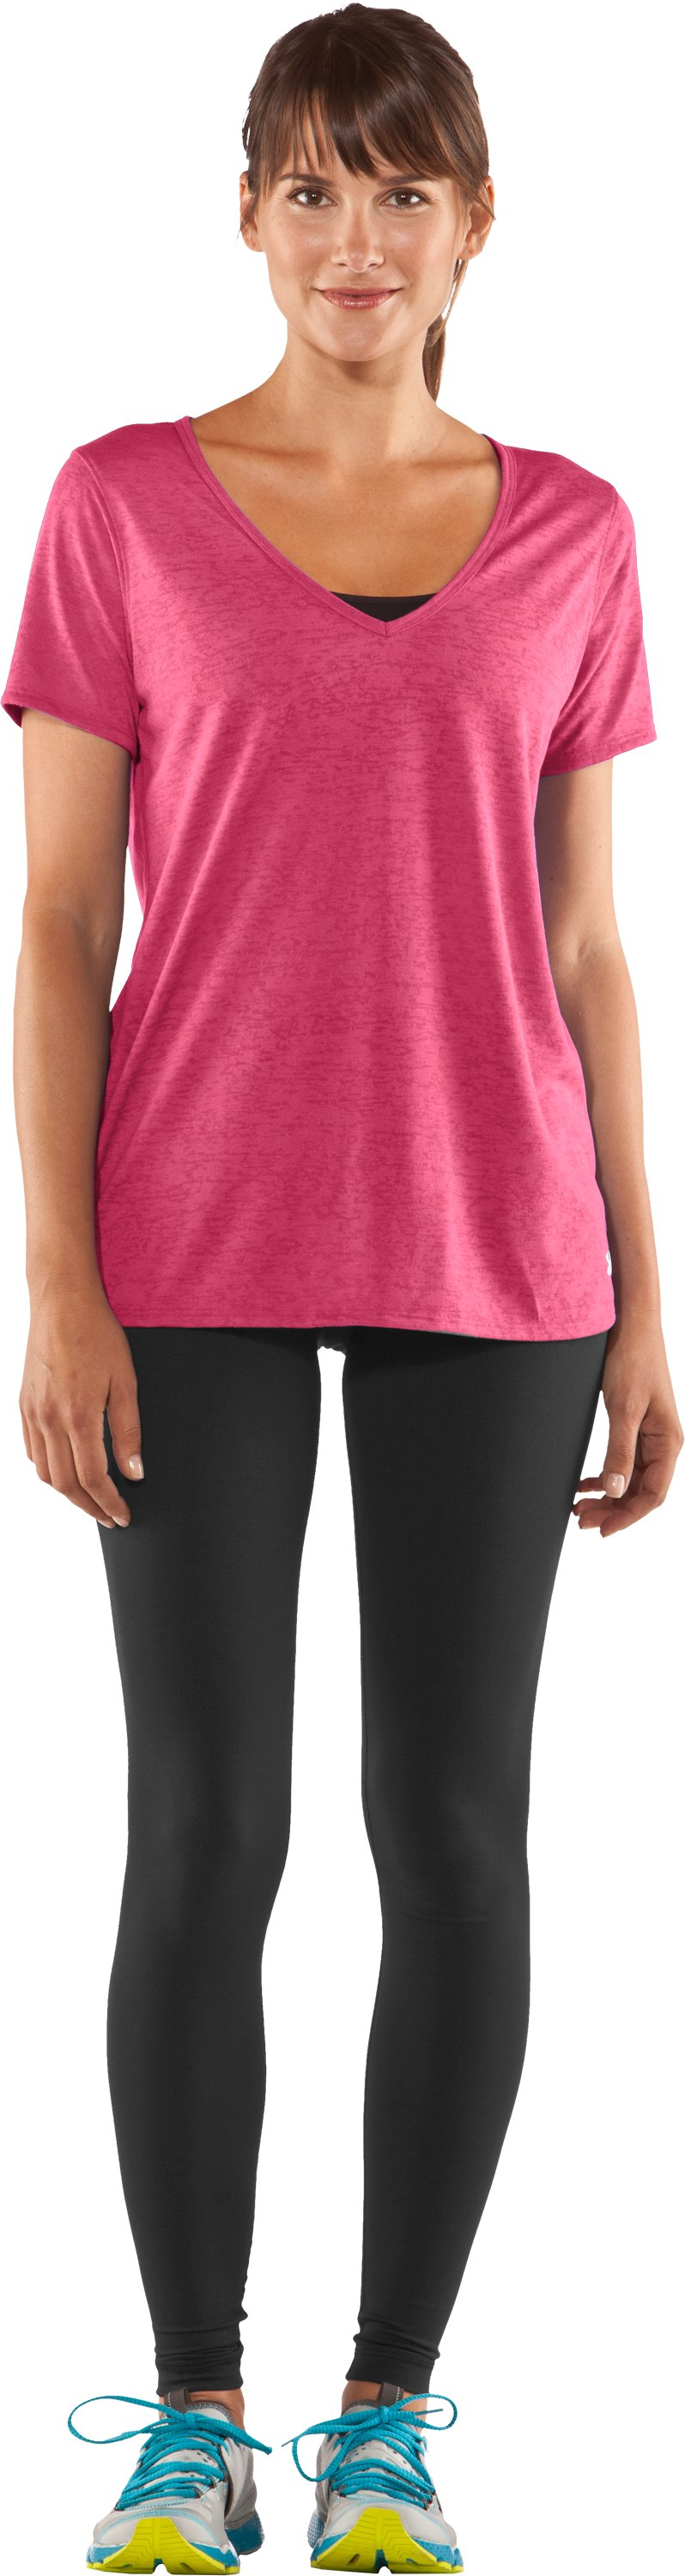 Women's Achieve Burnout T-Shirt, Ultra